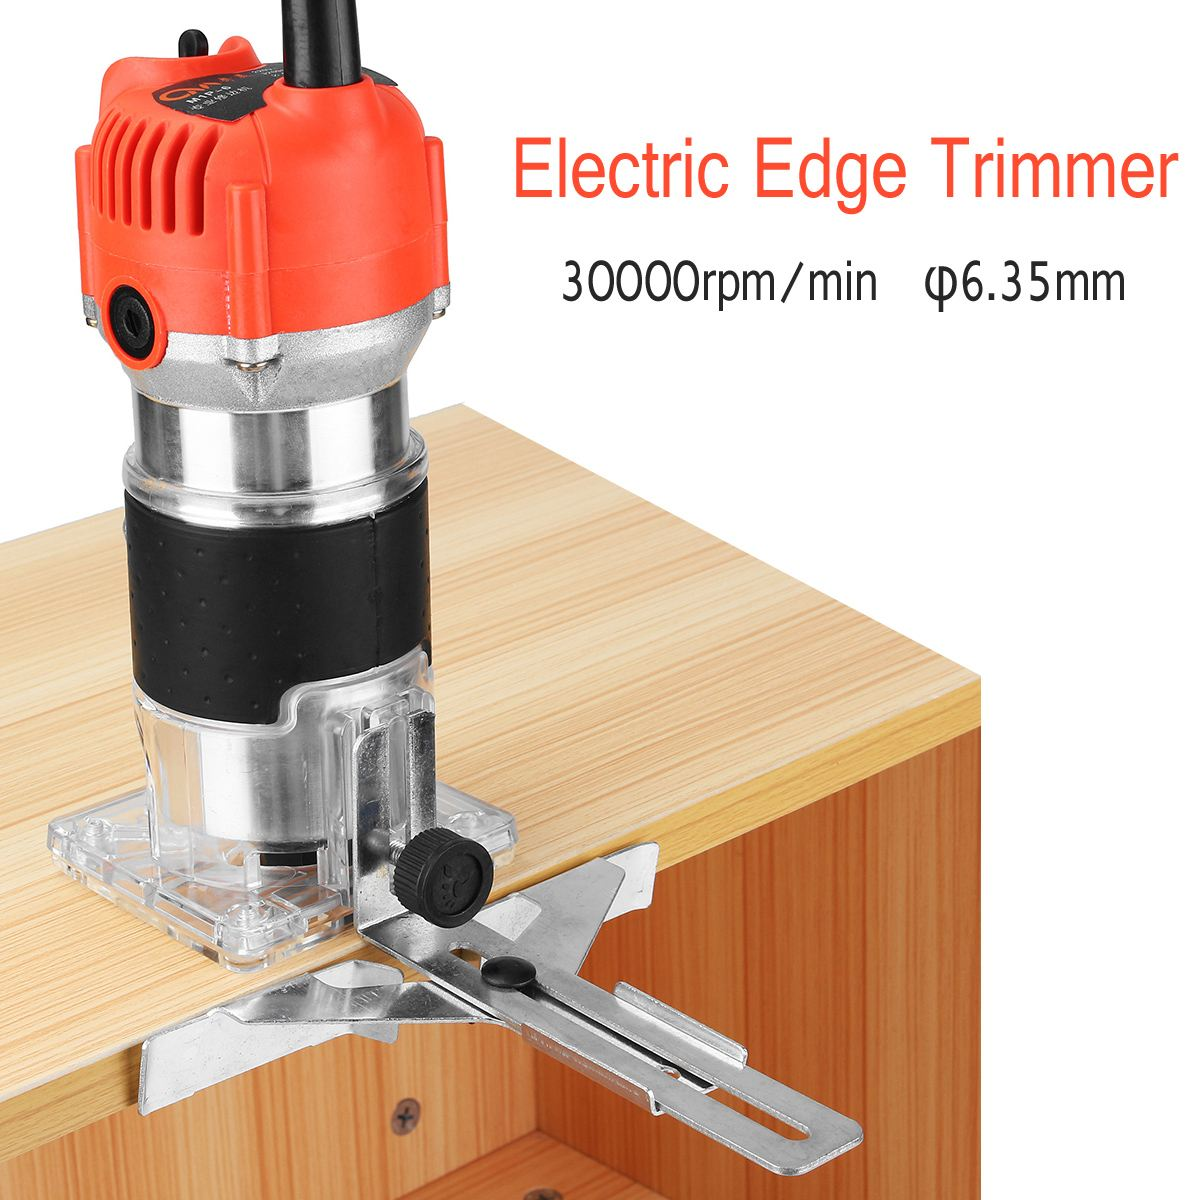 220 v 680 W 30000 RPM 6.35 MM Multi Função Carpintaria Carpintaria Trimmer Borda Elétrica MachineWood Borda Cortador/Router